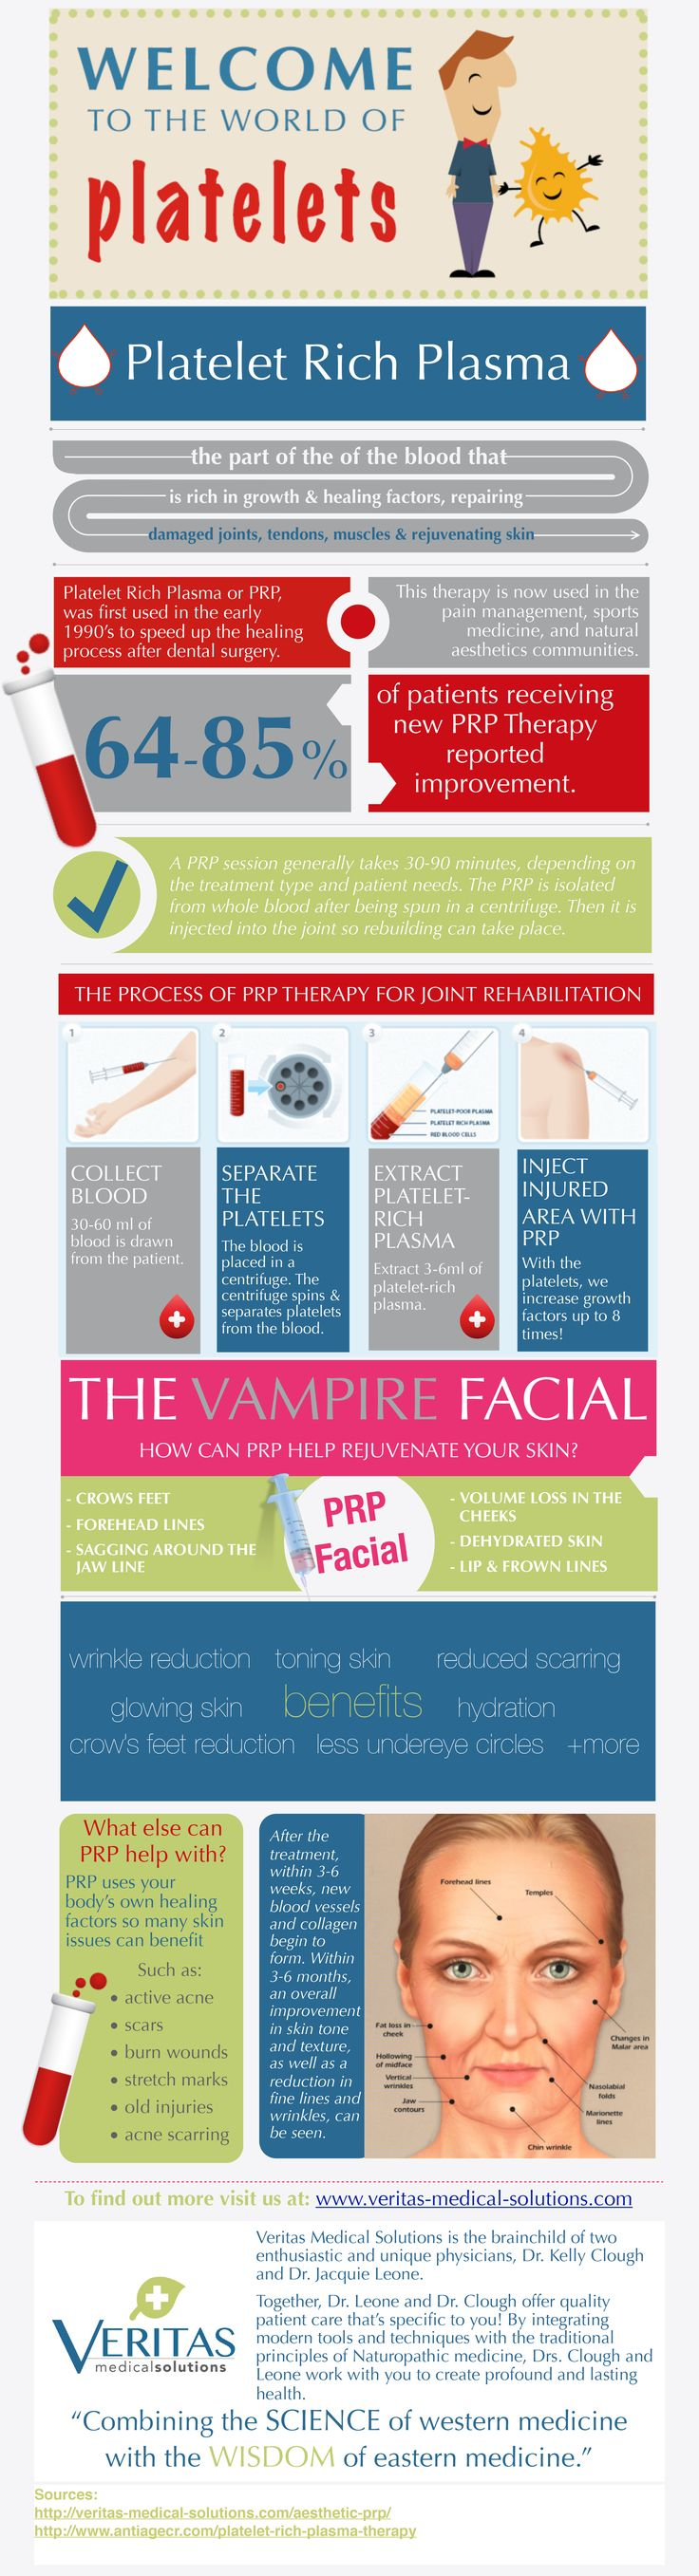 Science and medicine have done it again! By harnessing your own body's growth factors, there is now a method that heals and repairs damaged tissues in your body! It's safe, natural, and most importantly, it's effective! Platelet Rich Plasma Therapy allows YOU to heal YOURSELF! platelet rich plasma facial #PRP #vampirefacial #kimkardashian